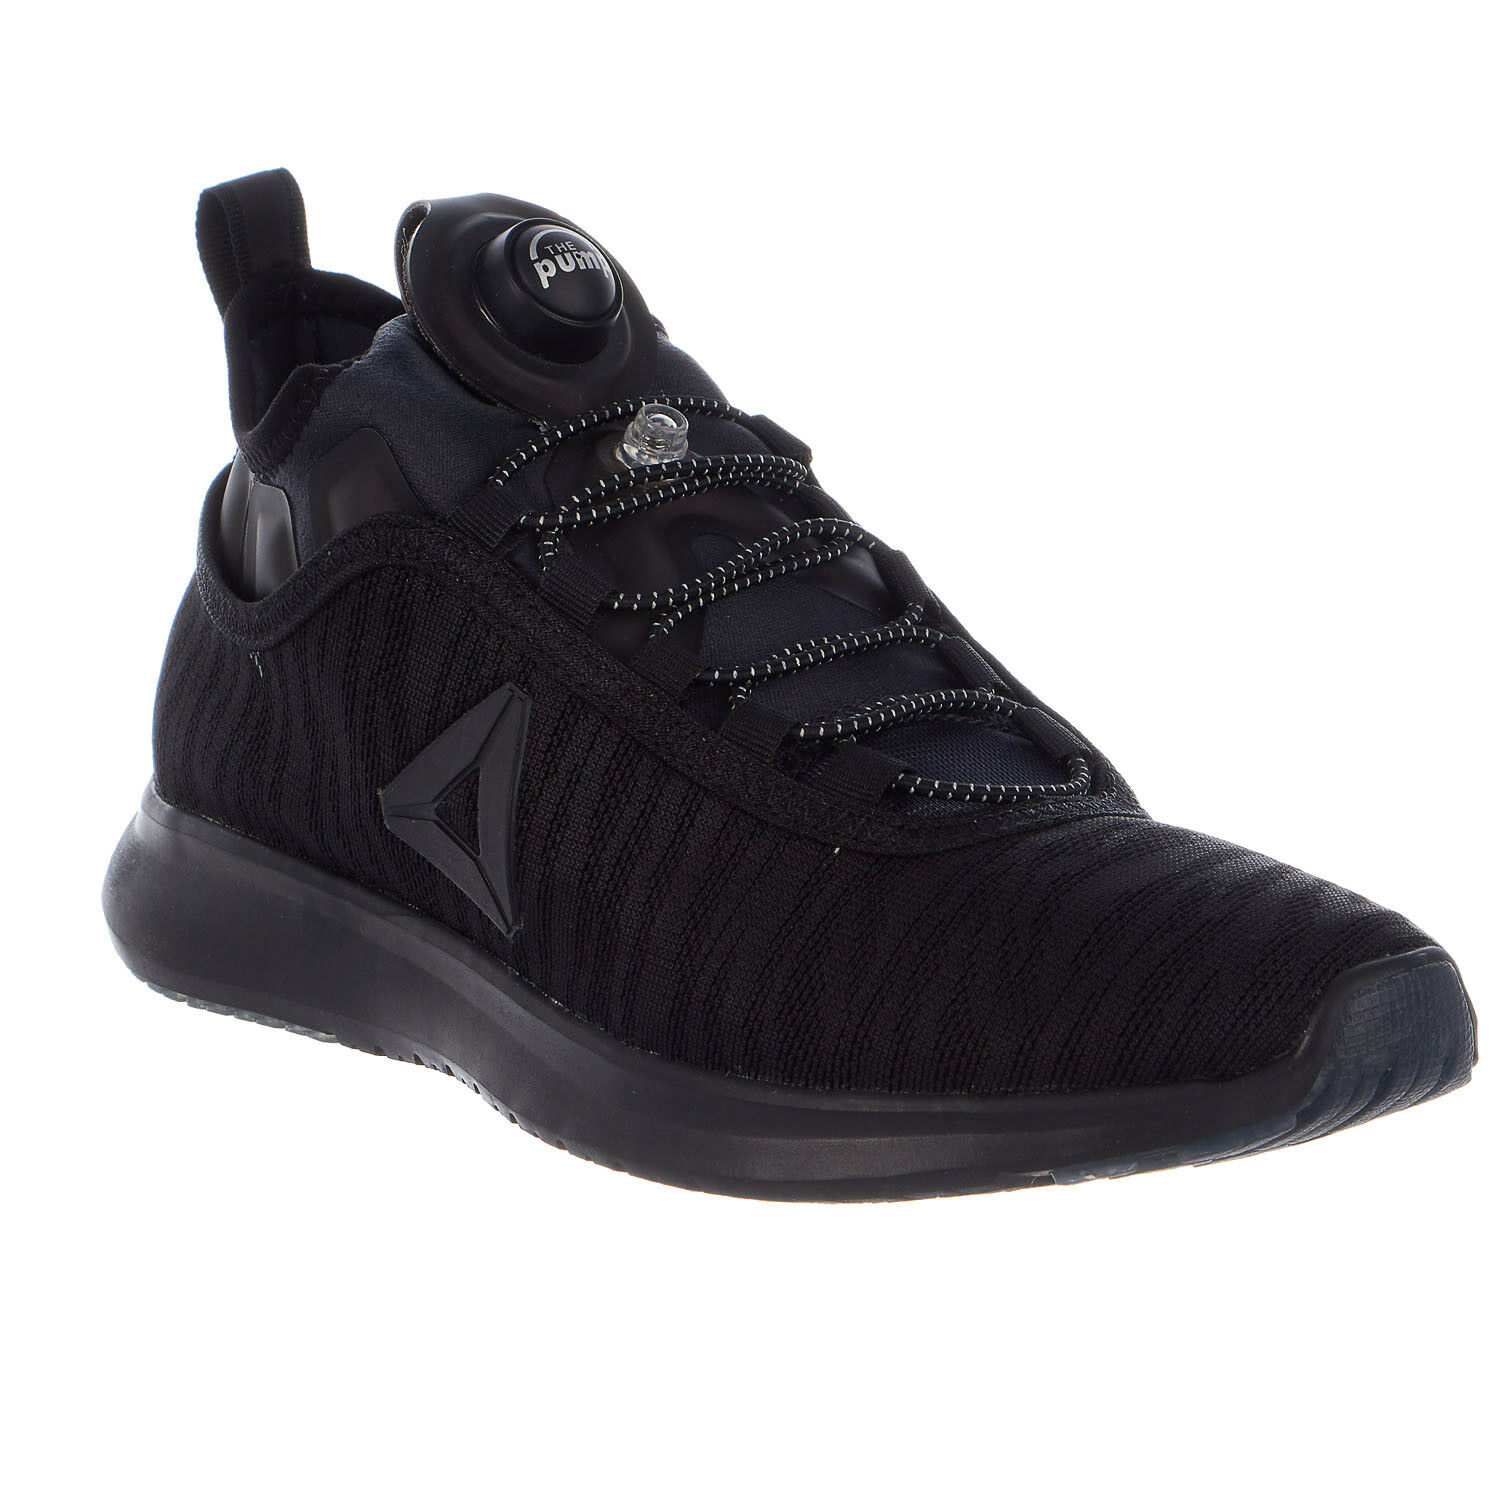 Reebok Pump Plus Flame shoes  - - - Womens 9a7fdf